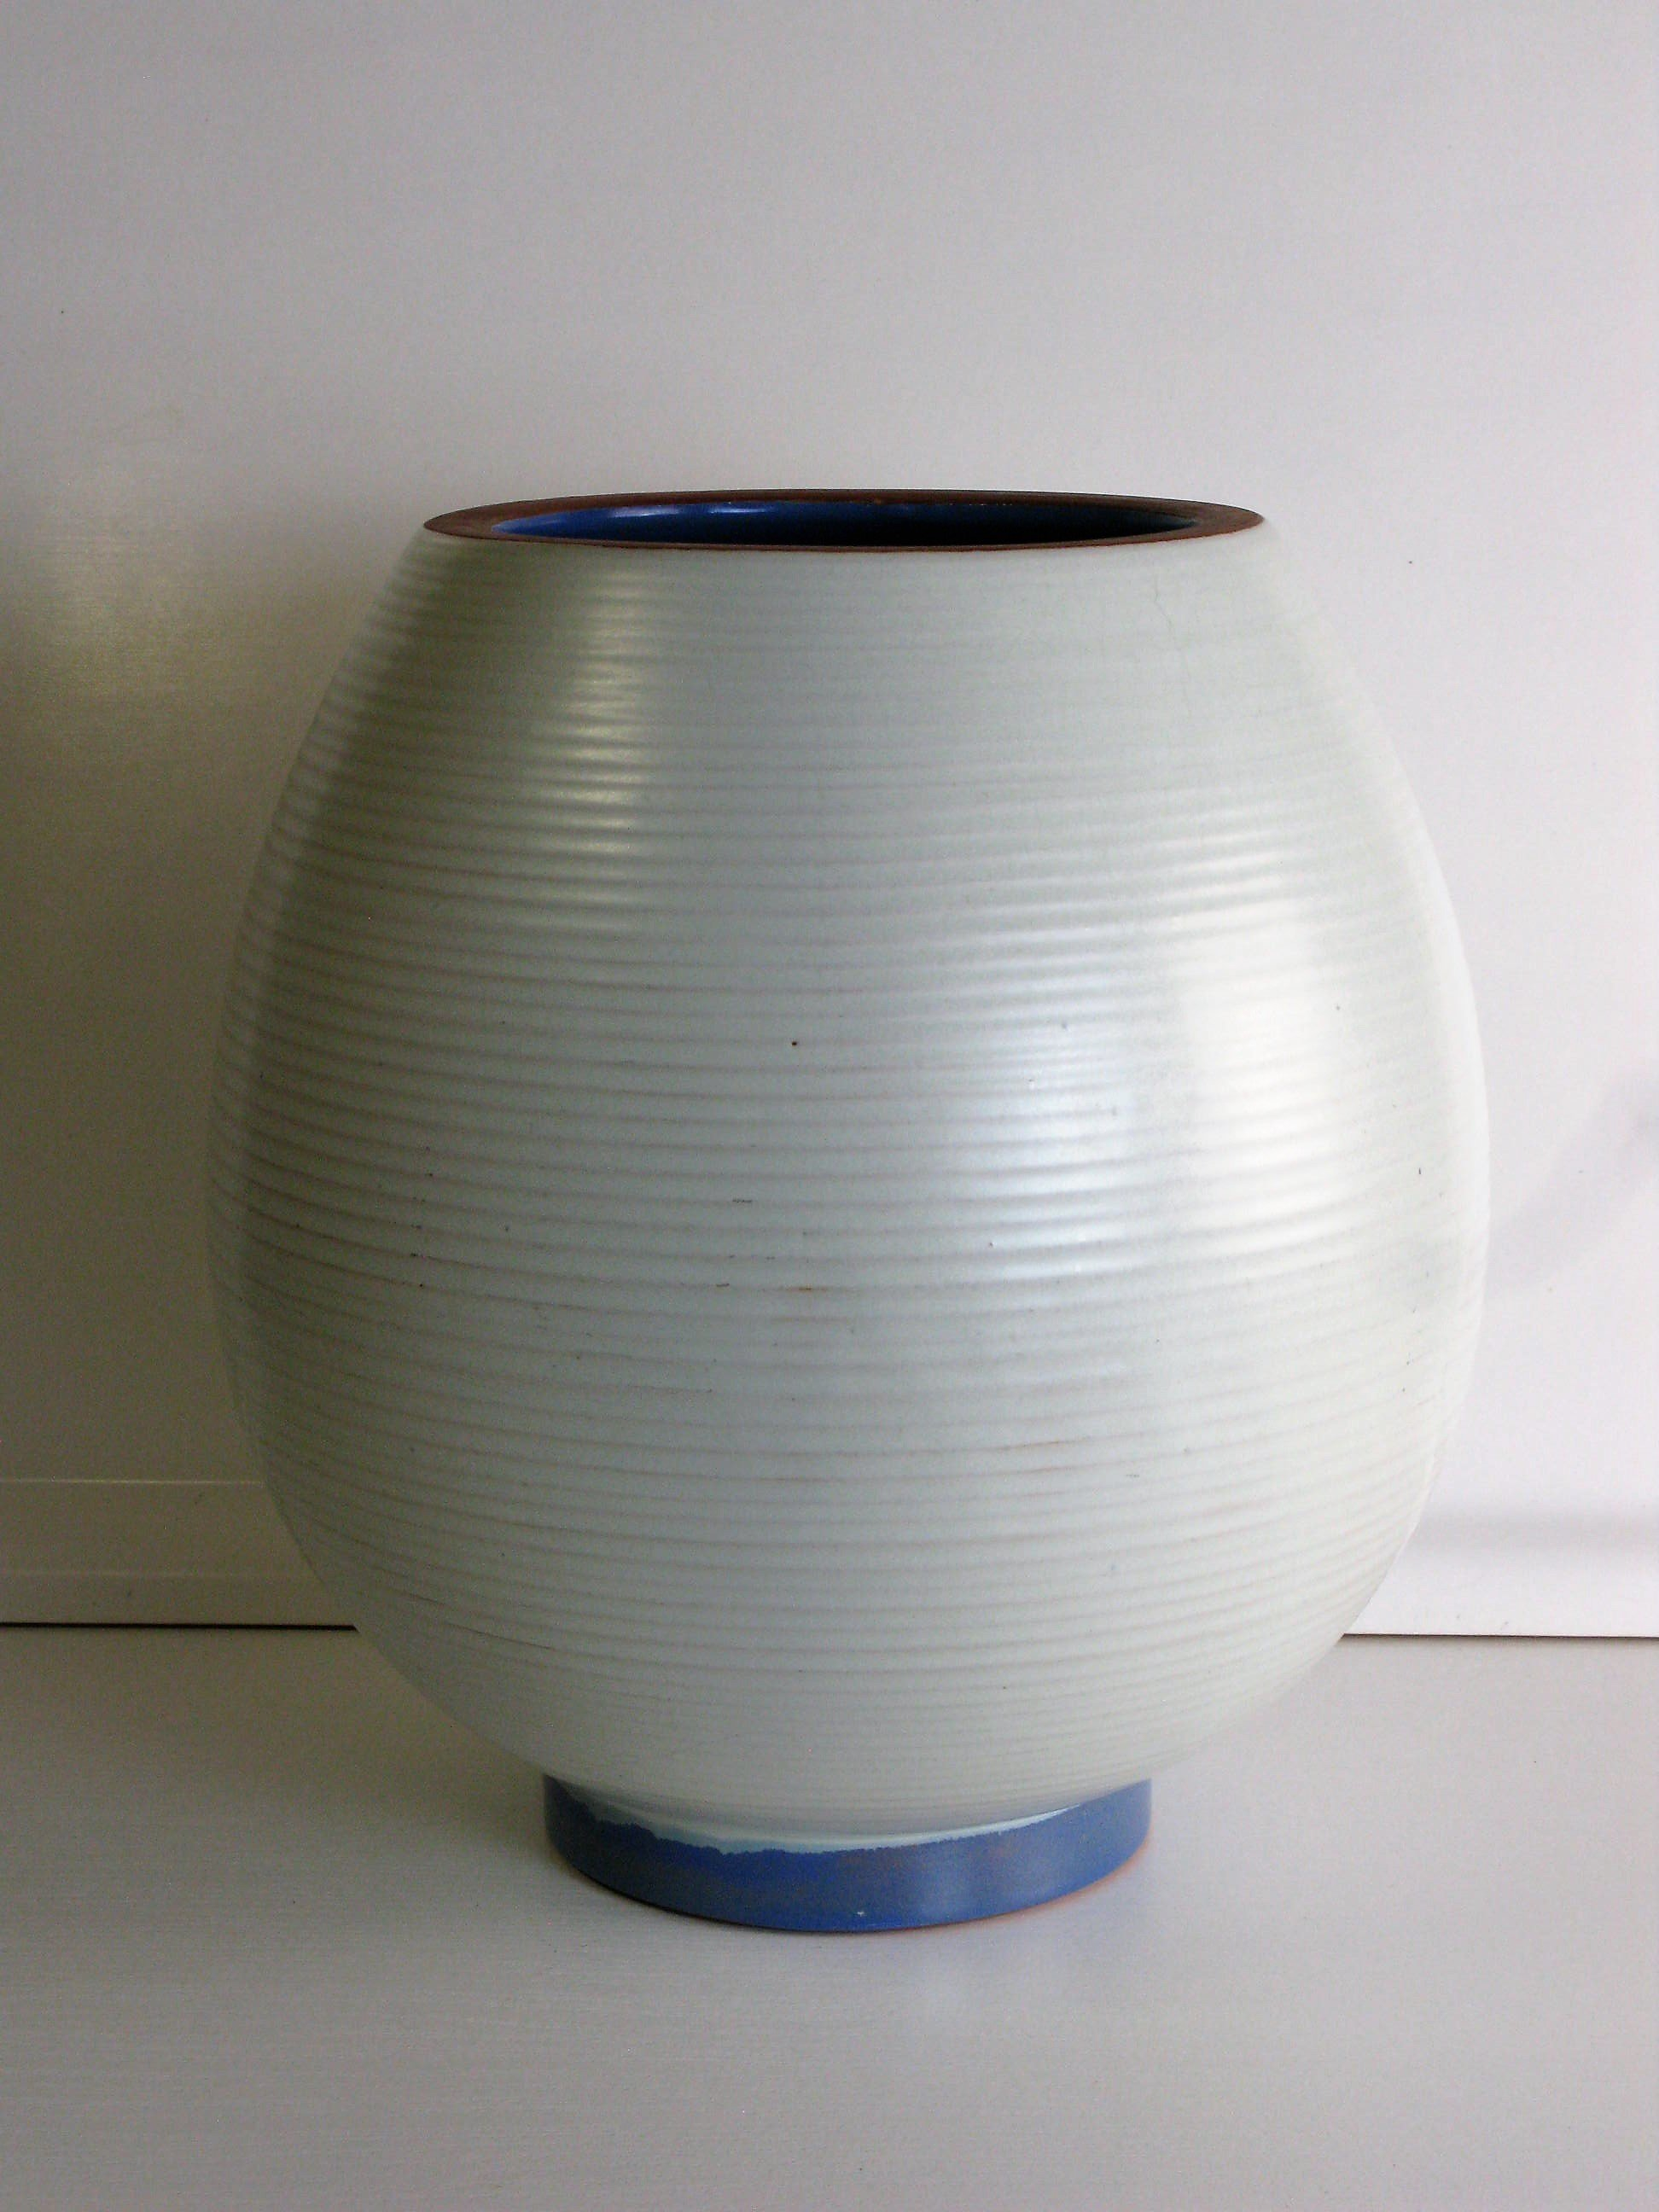 White urn 3345 with blue details